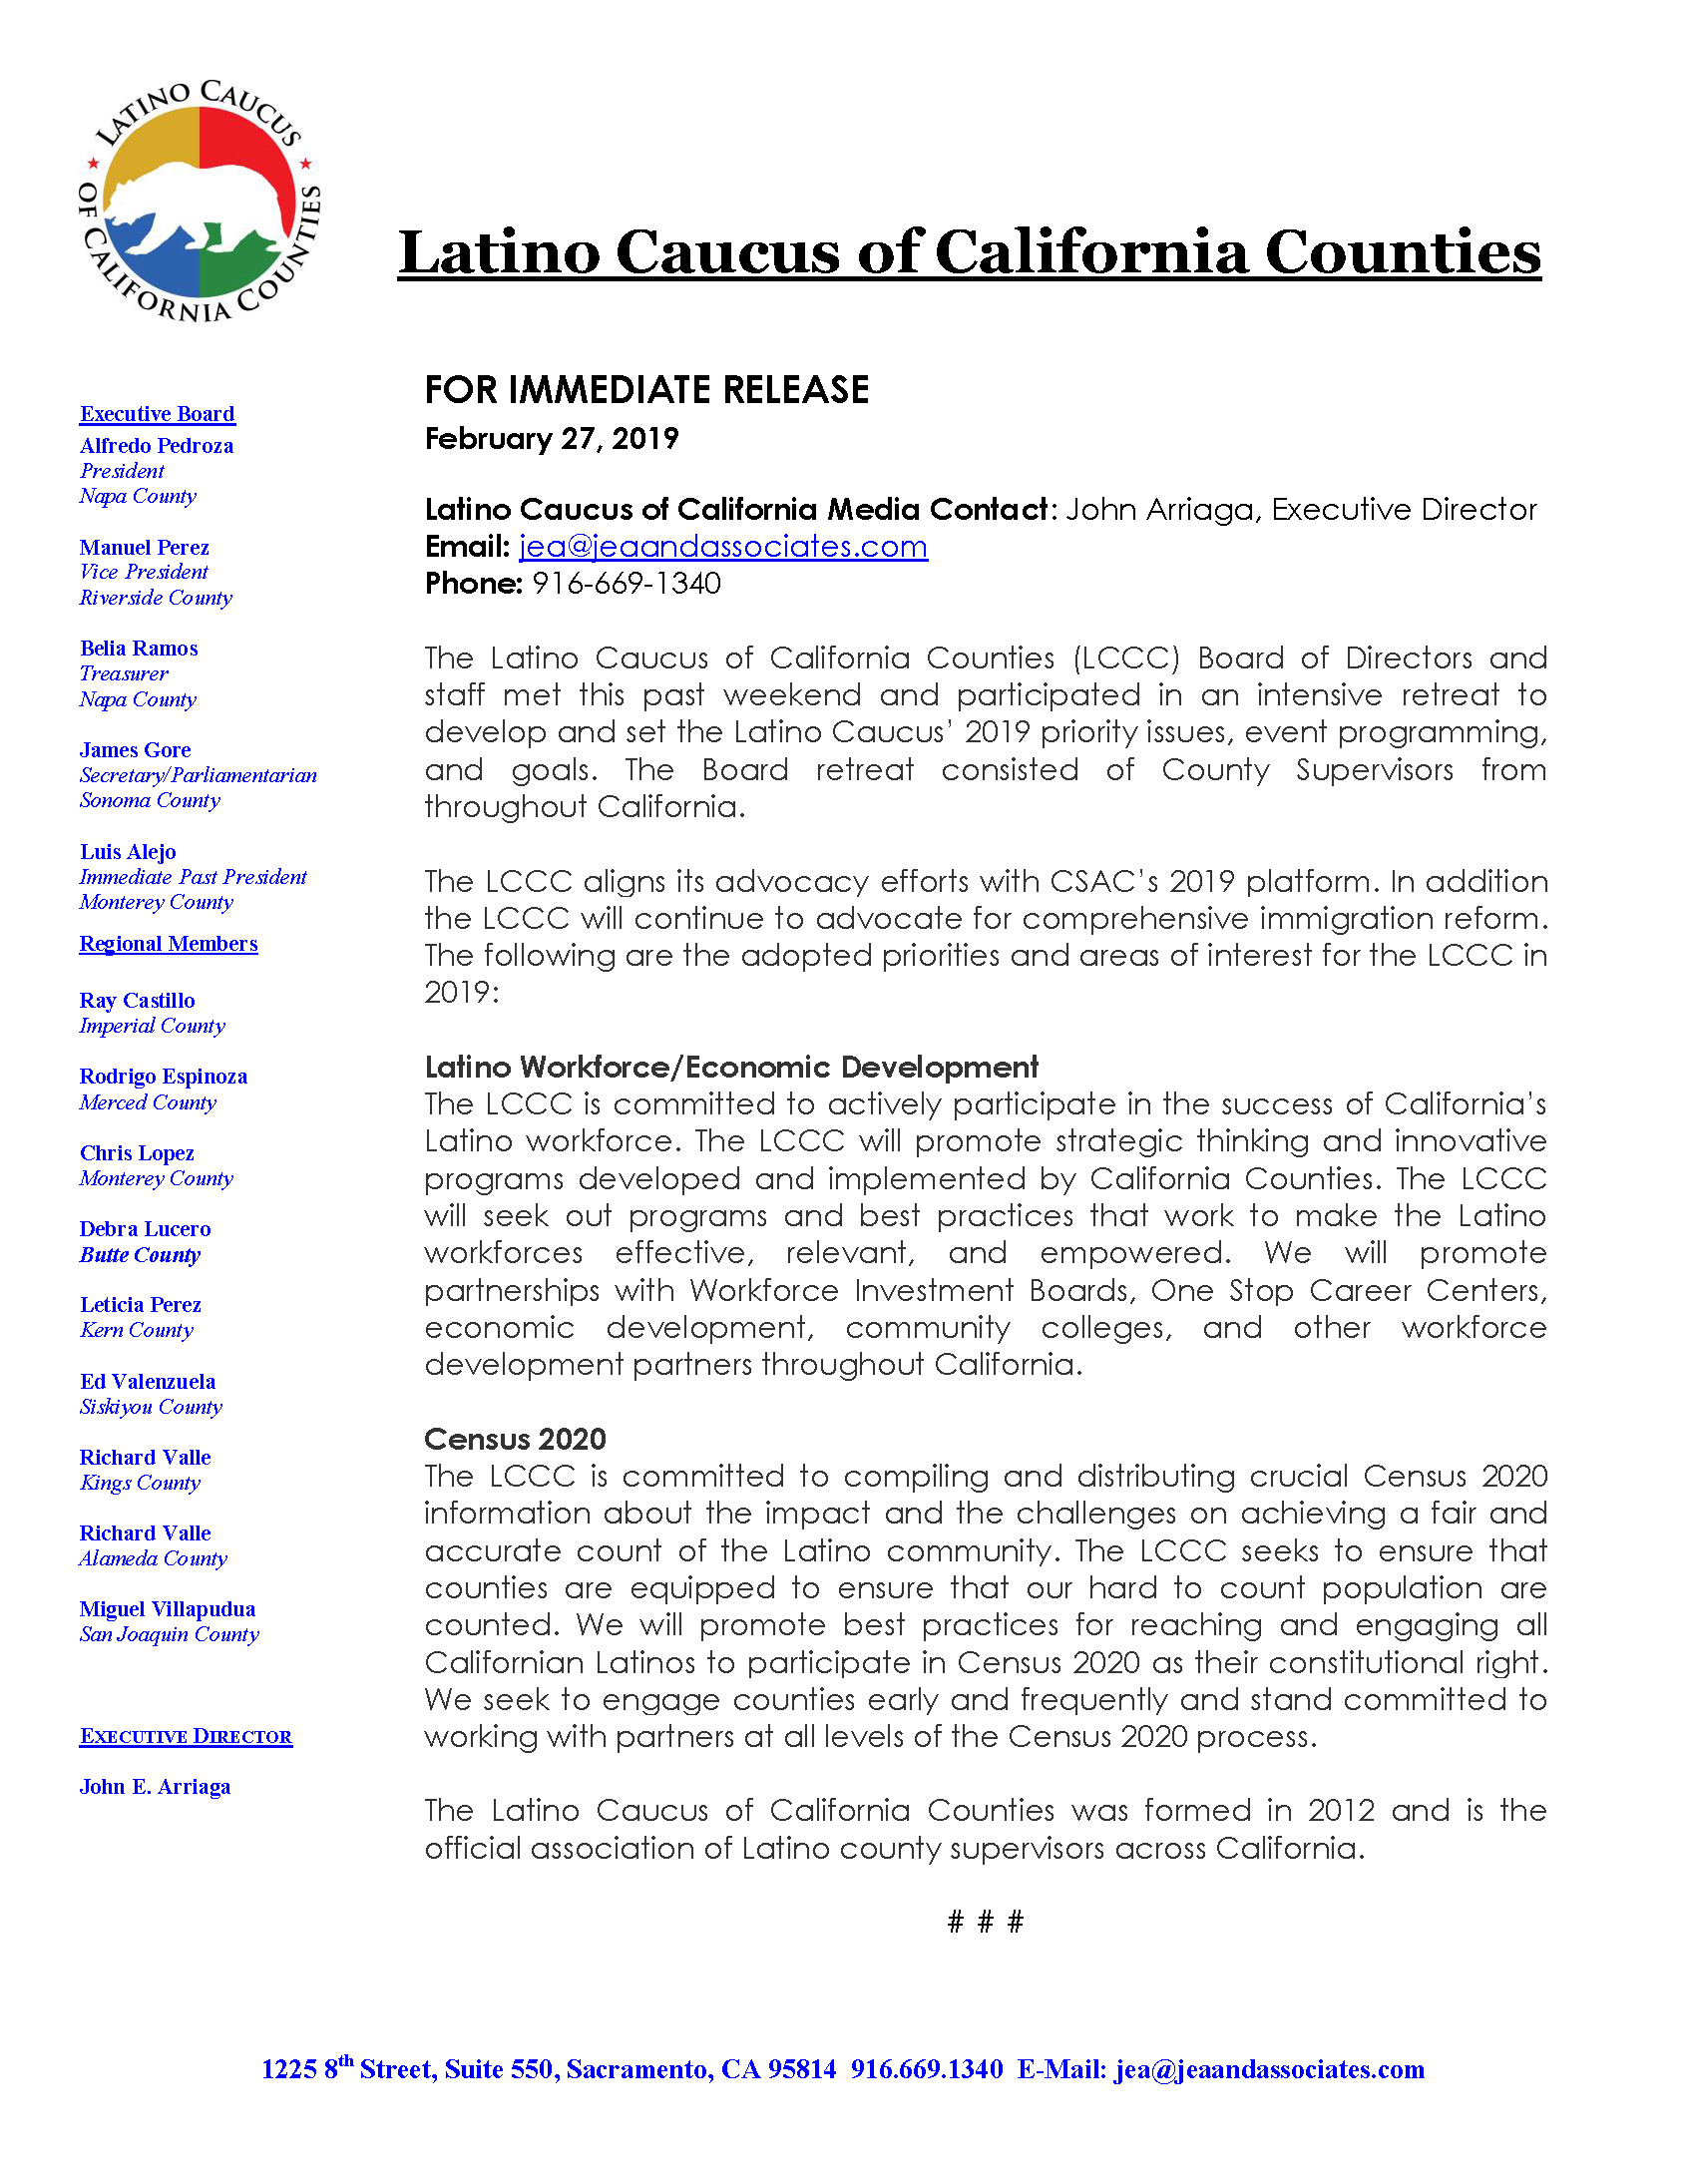 Press Release- LCCC Priorities 2019.png